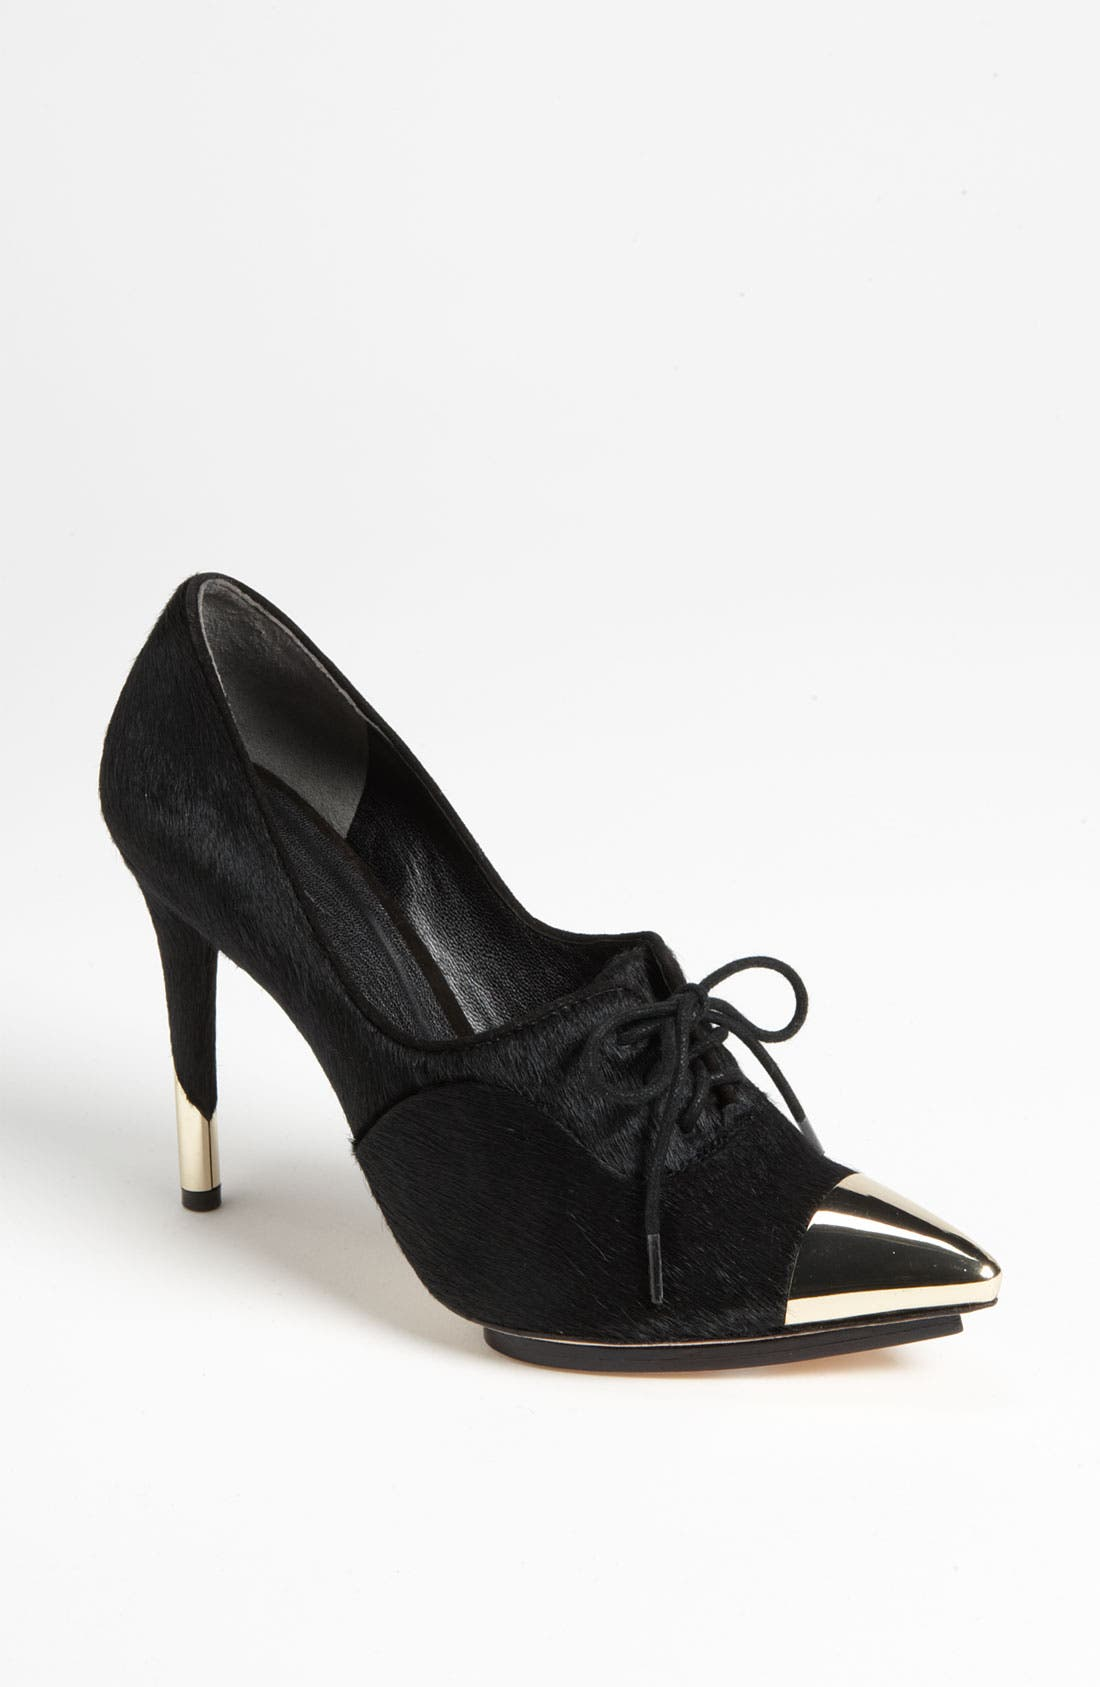 Main Image - Rachel Roy 'Bette' Pump